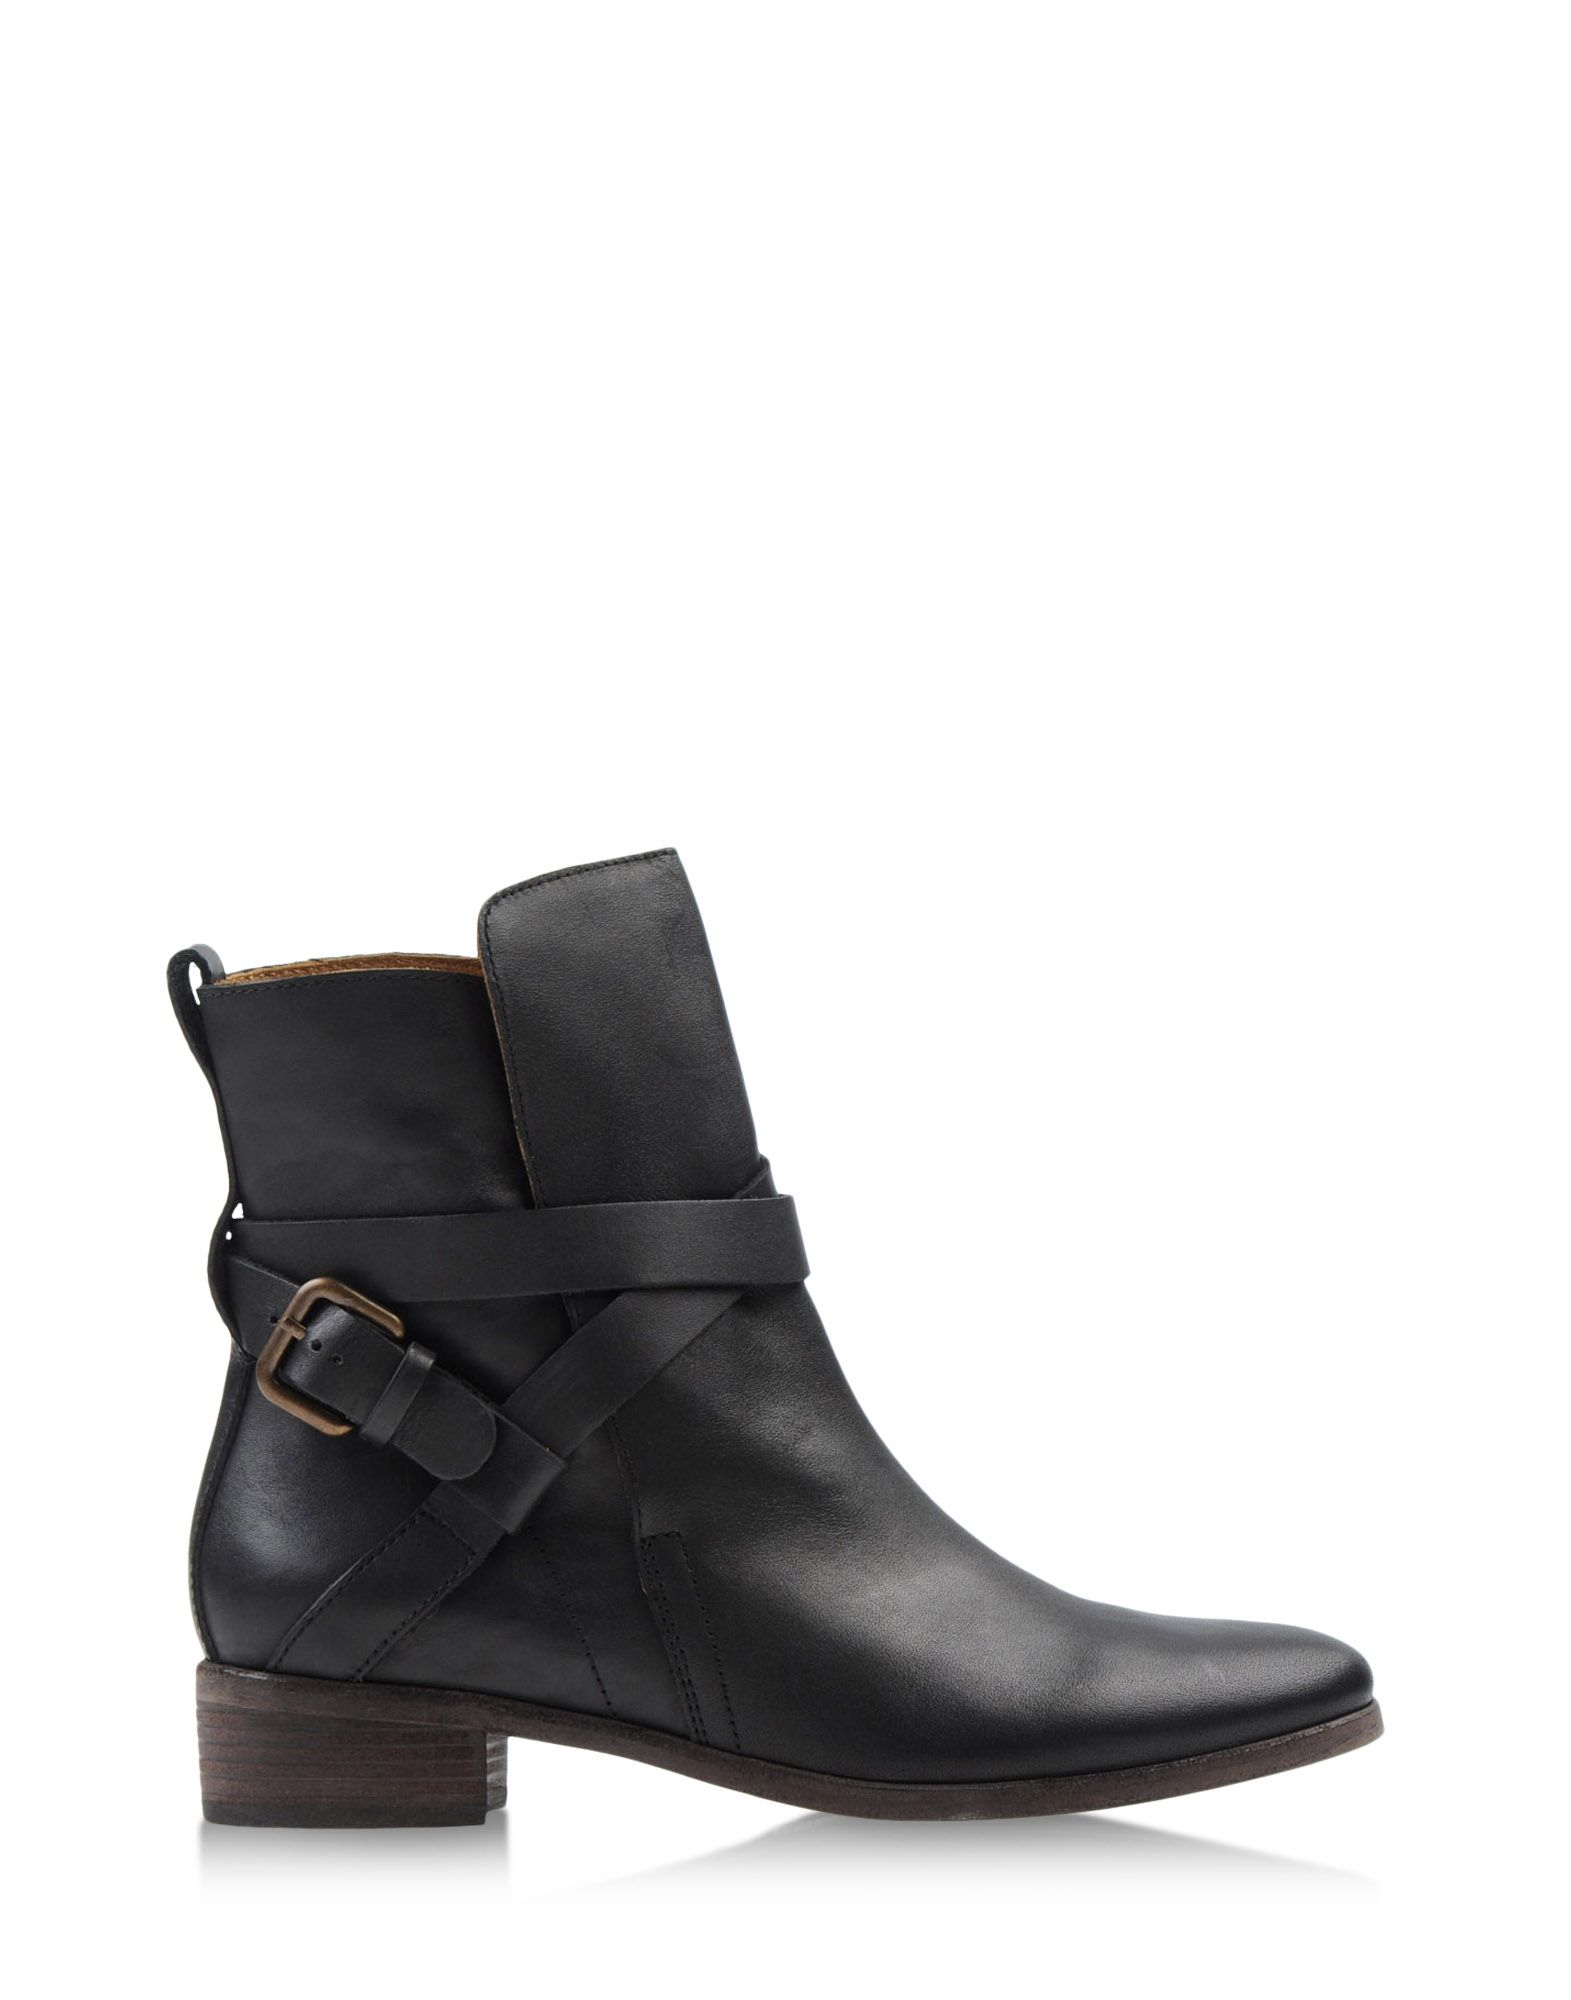 see by chlo ankle boots in black lyst. Black Bedroom Furniture Sets. Home Design Ideas